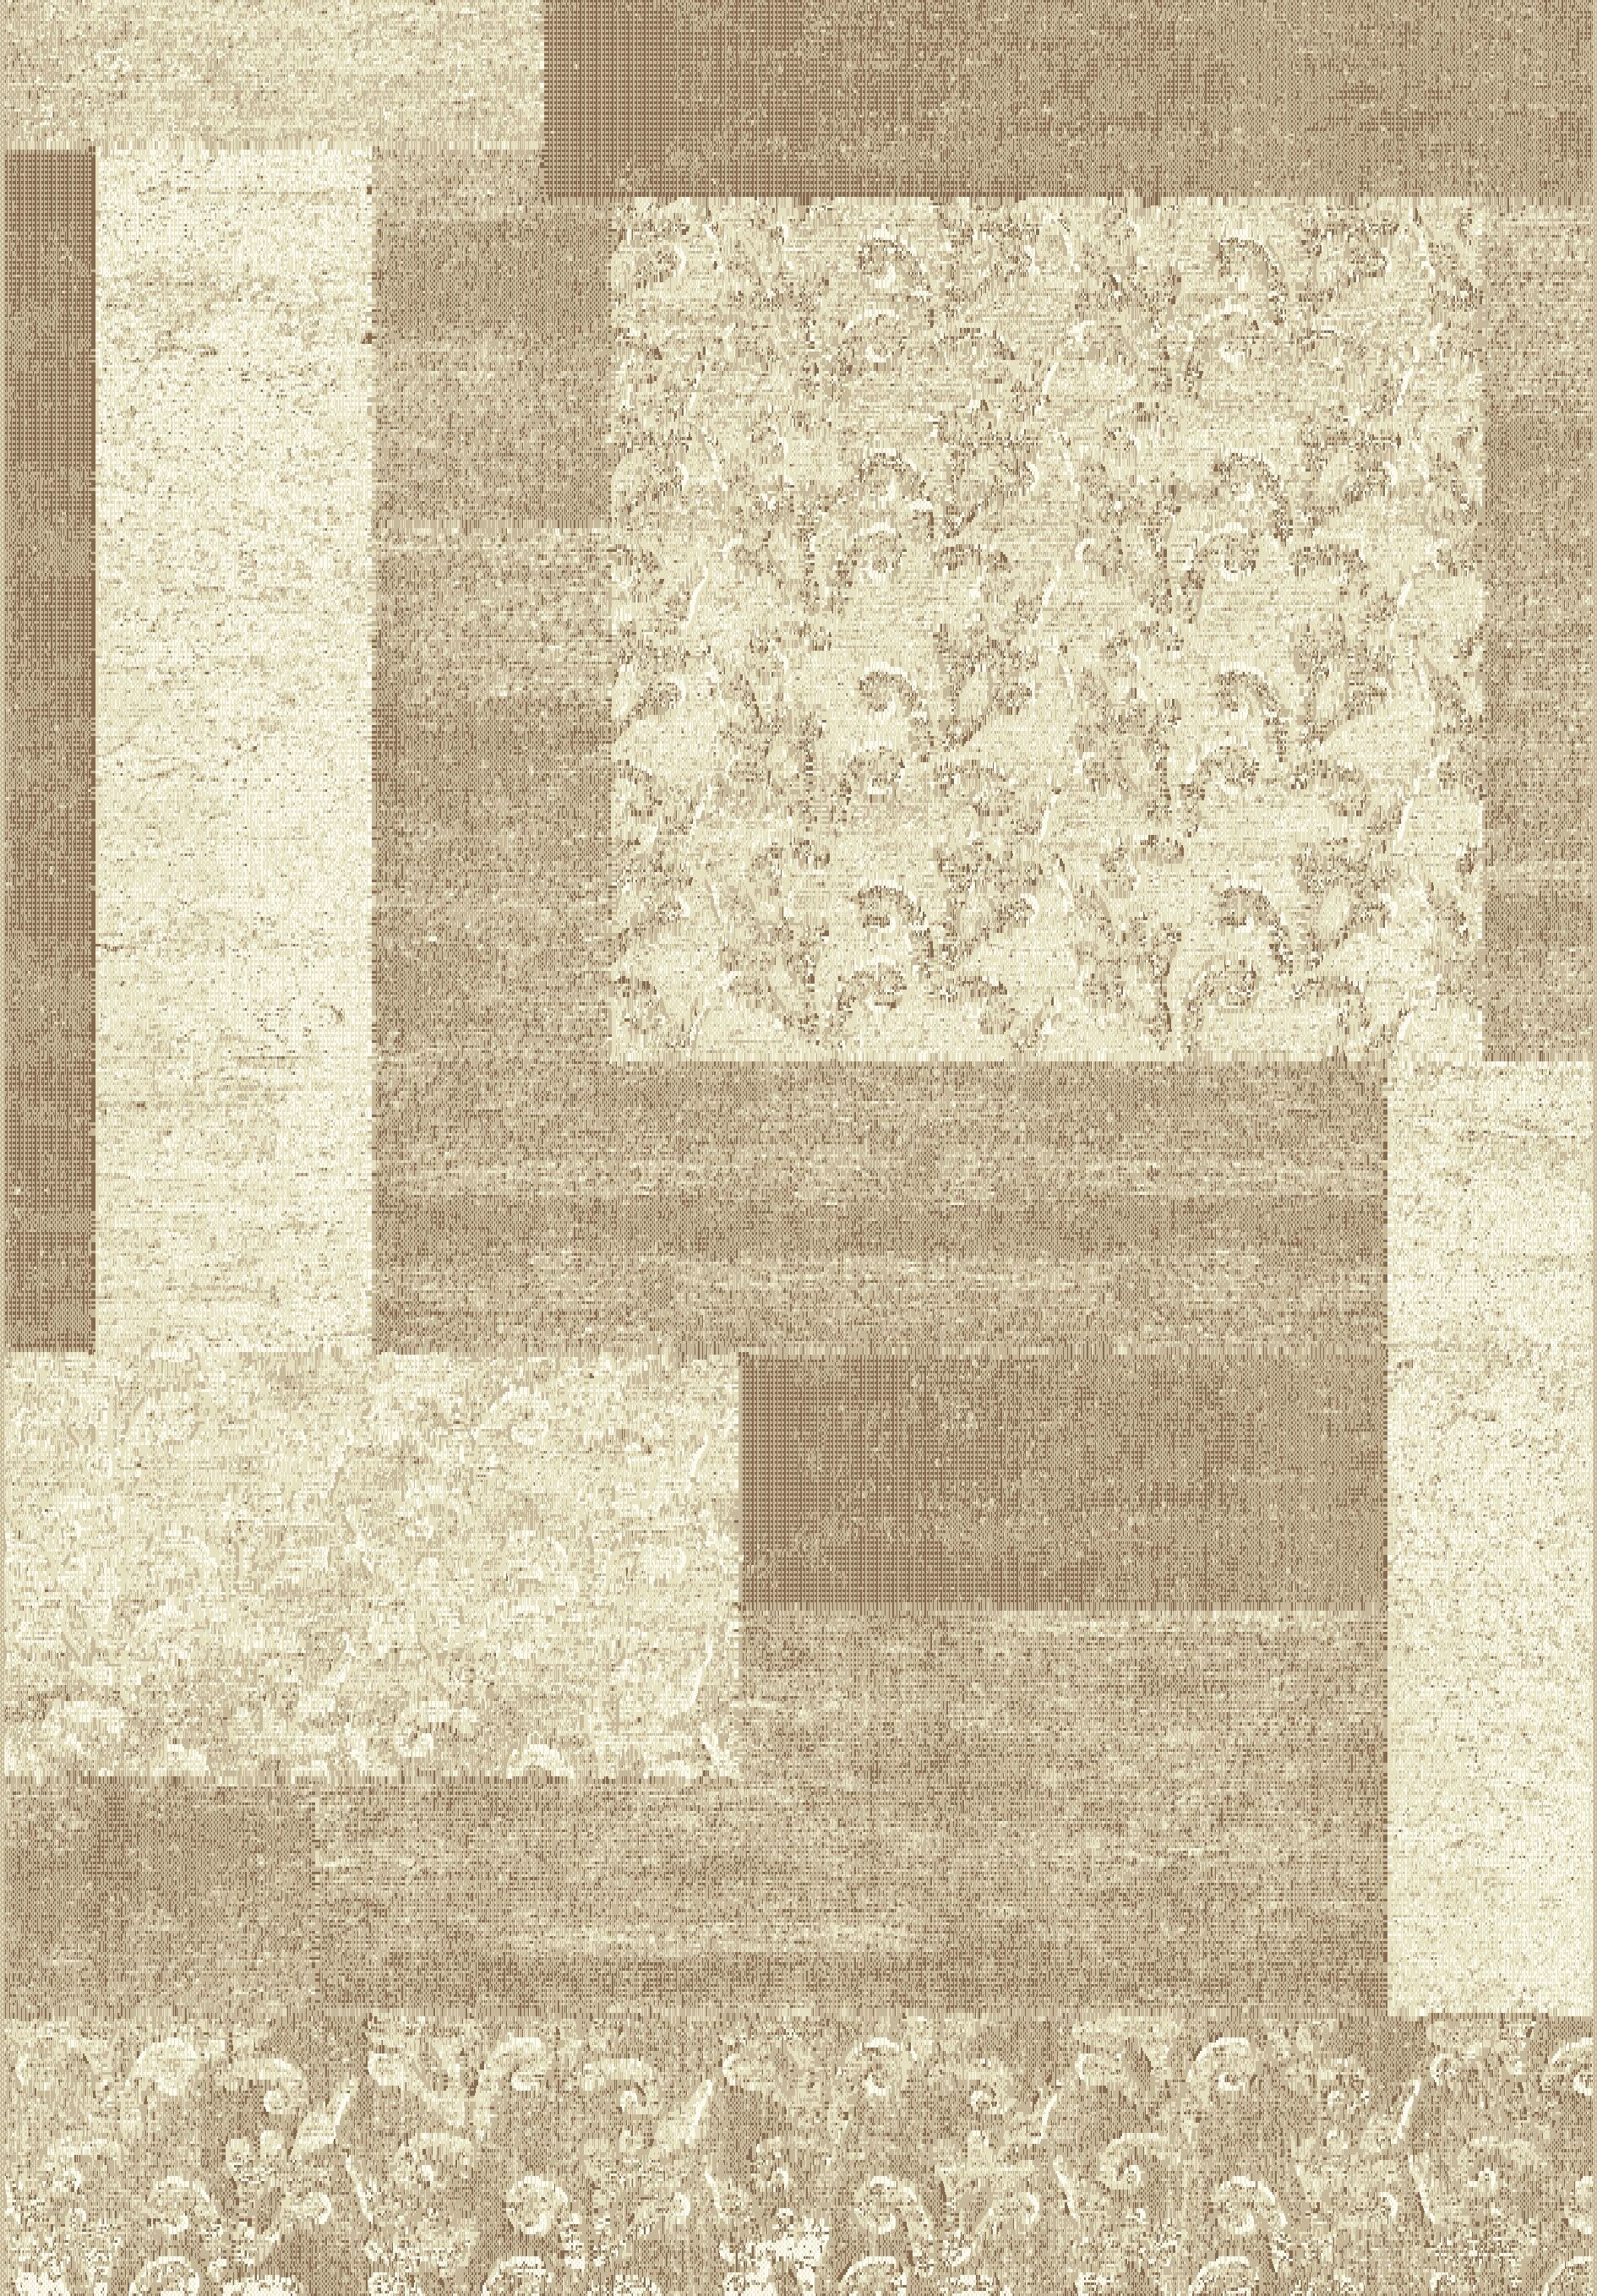 Stringer Beige Block Area Rug Rug Size: Rectangle 6'7